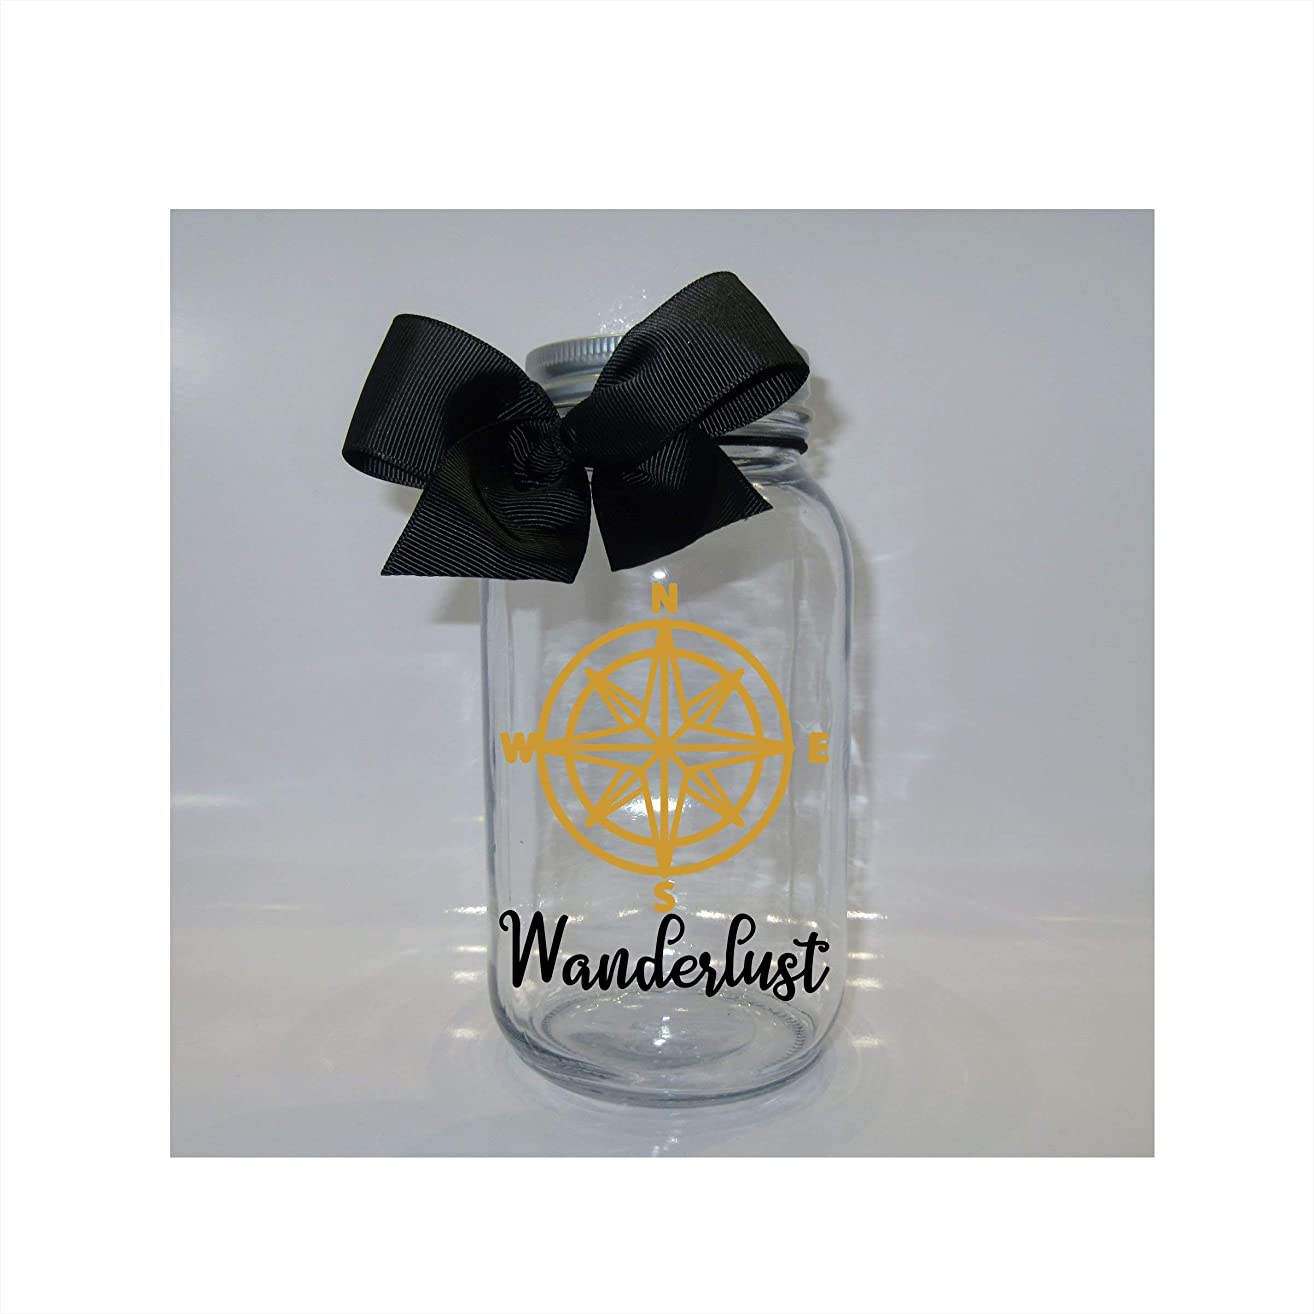 Wanderlust Fund Mason Jar Bank - Coin Slot Lid - Available in 3 Sizes